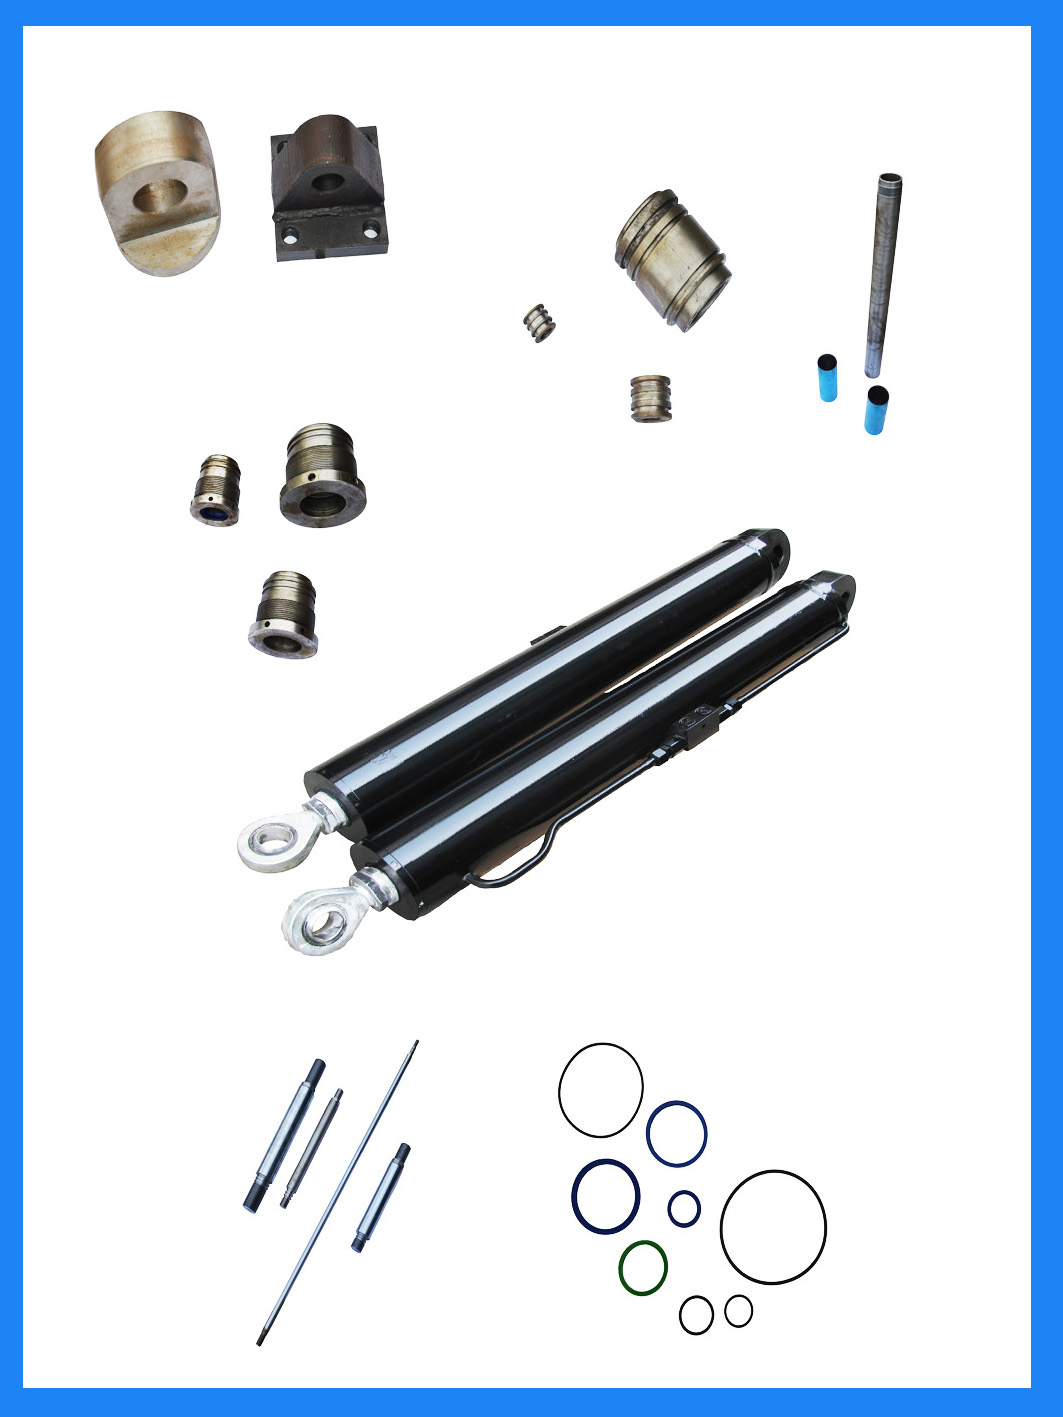 chrome material double acting hydraulic cylinder piston rod